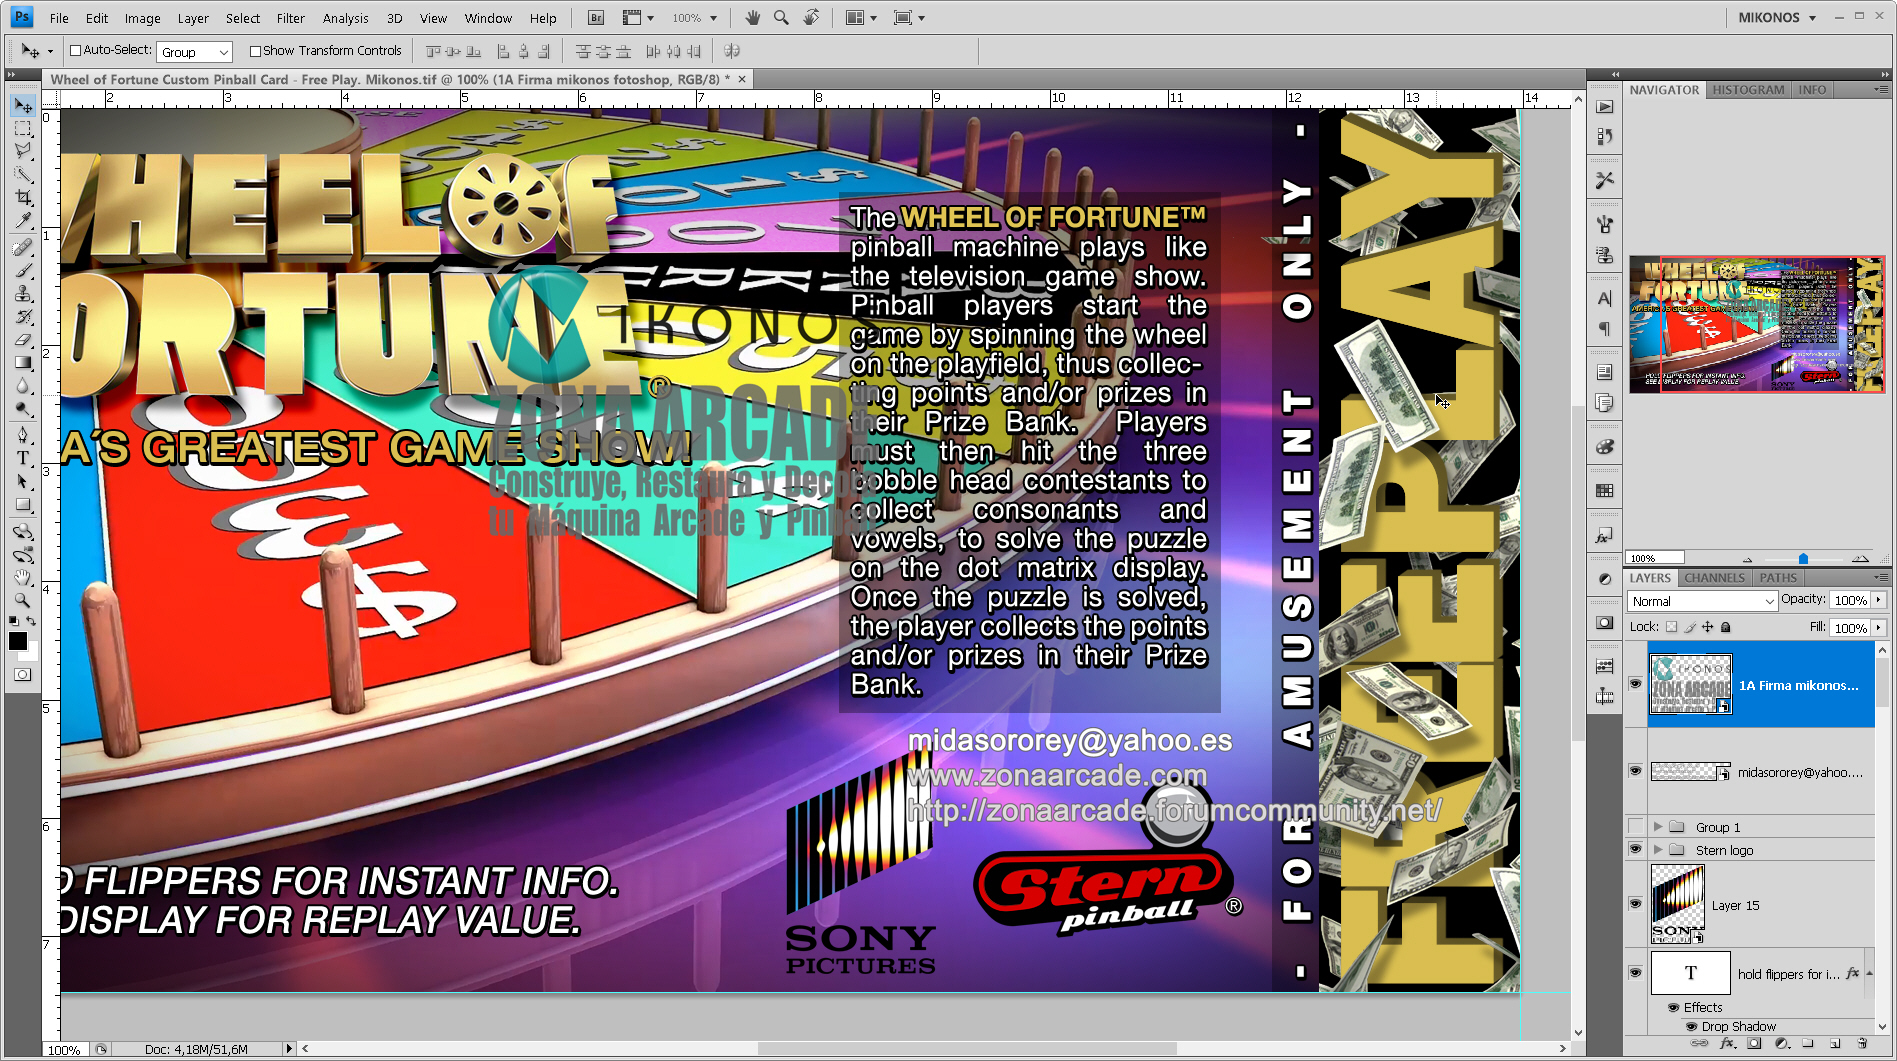 Wheel of Fortune Pinball Card Customized - Free Play. Mikonos1